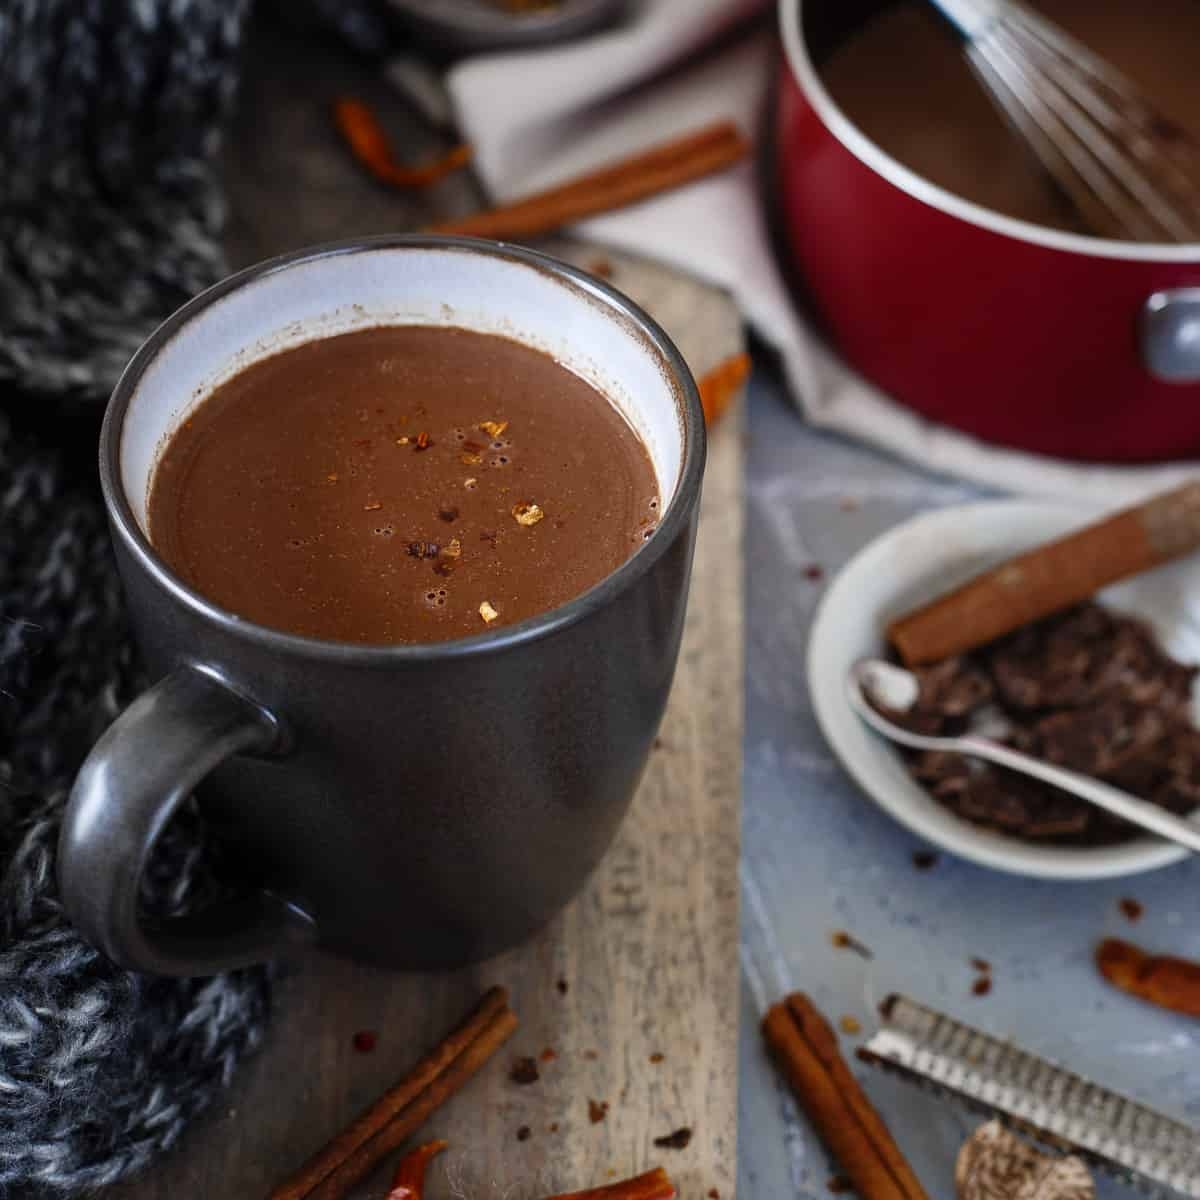 Mexican hot chocolate is the perfect balance of creamy, sweet, chocolaty and spicy. Perfect for a cozy winter day.